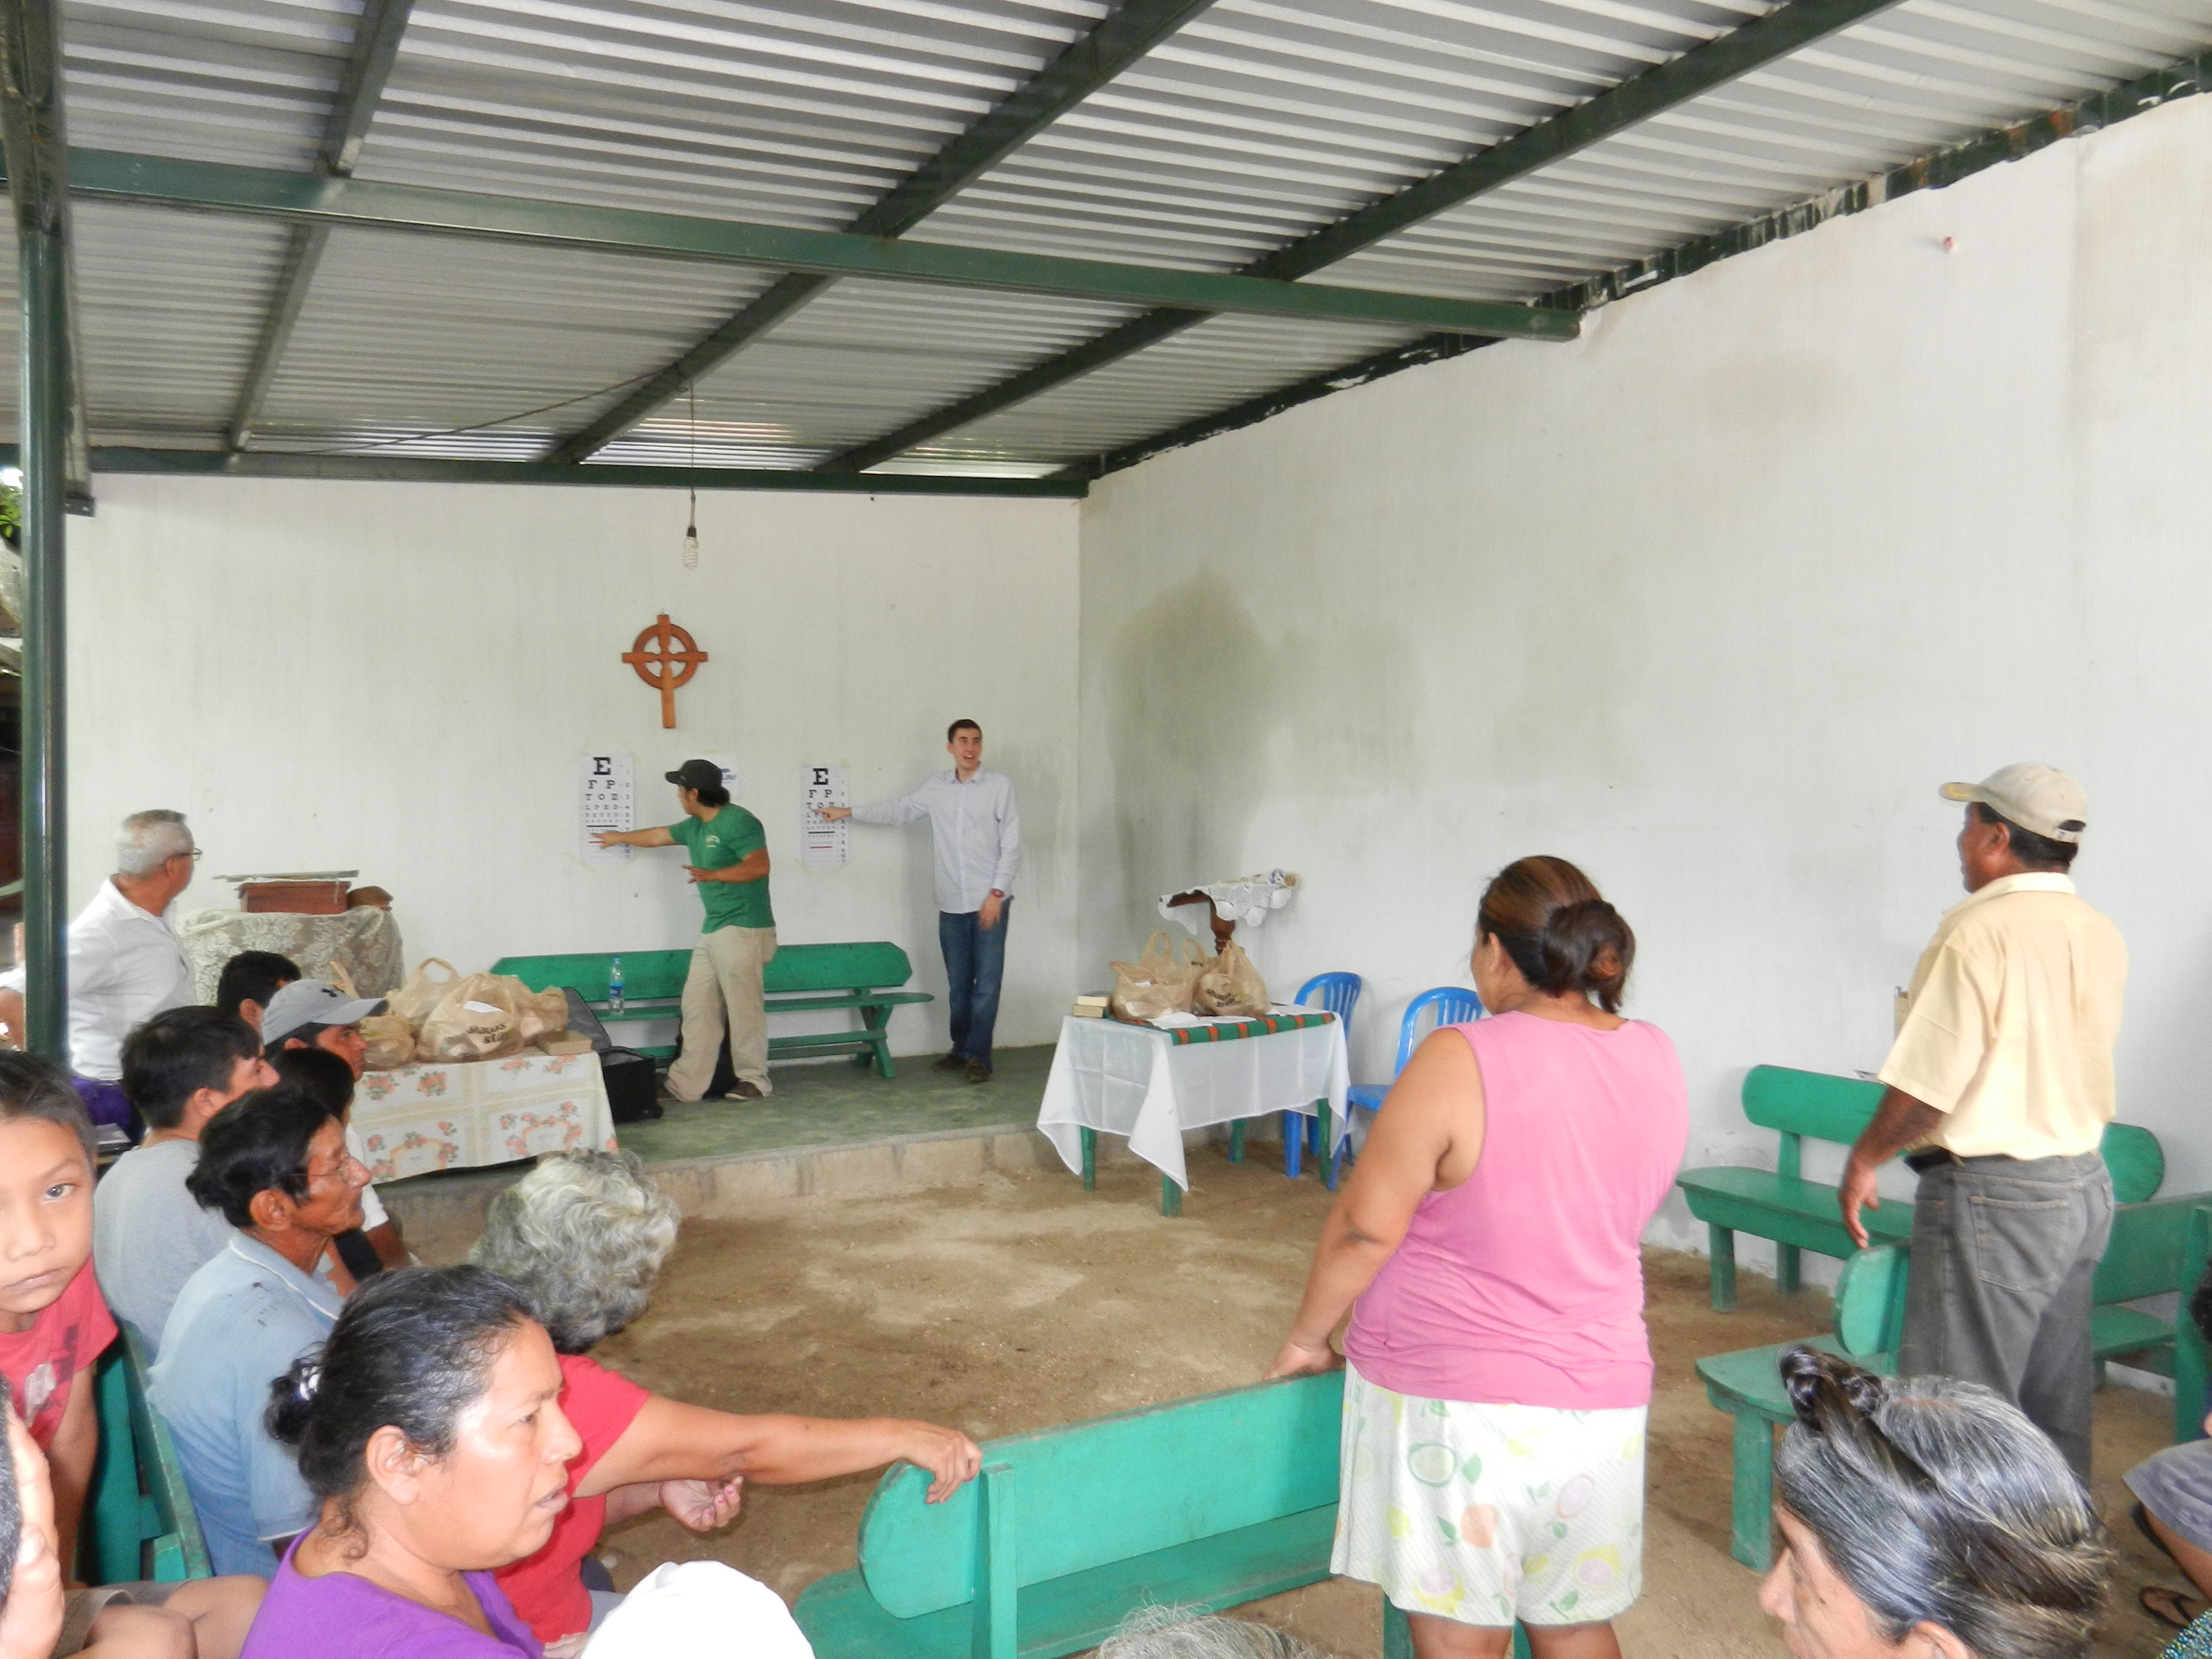 Garred and a Concejo Ecumenico volunteer working side by side to assess visual acuity.